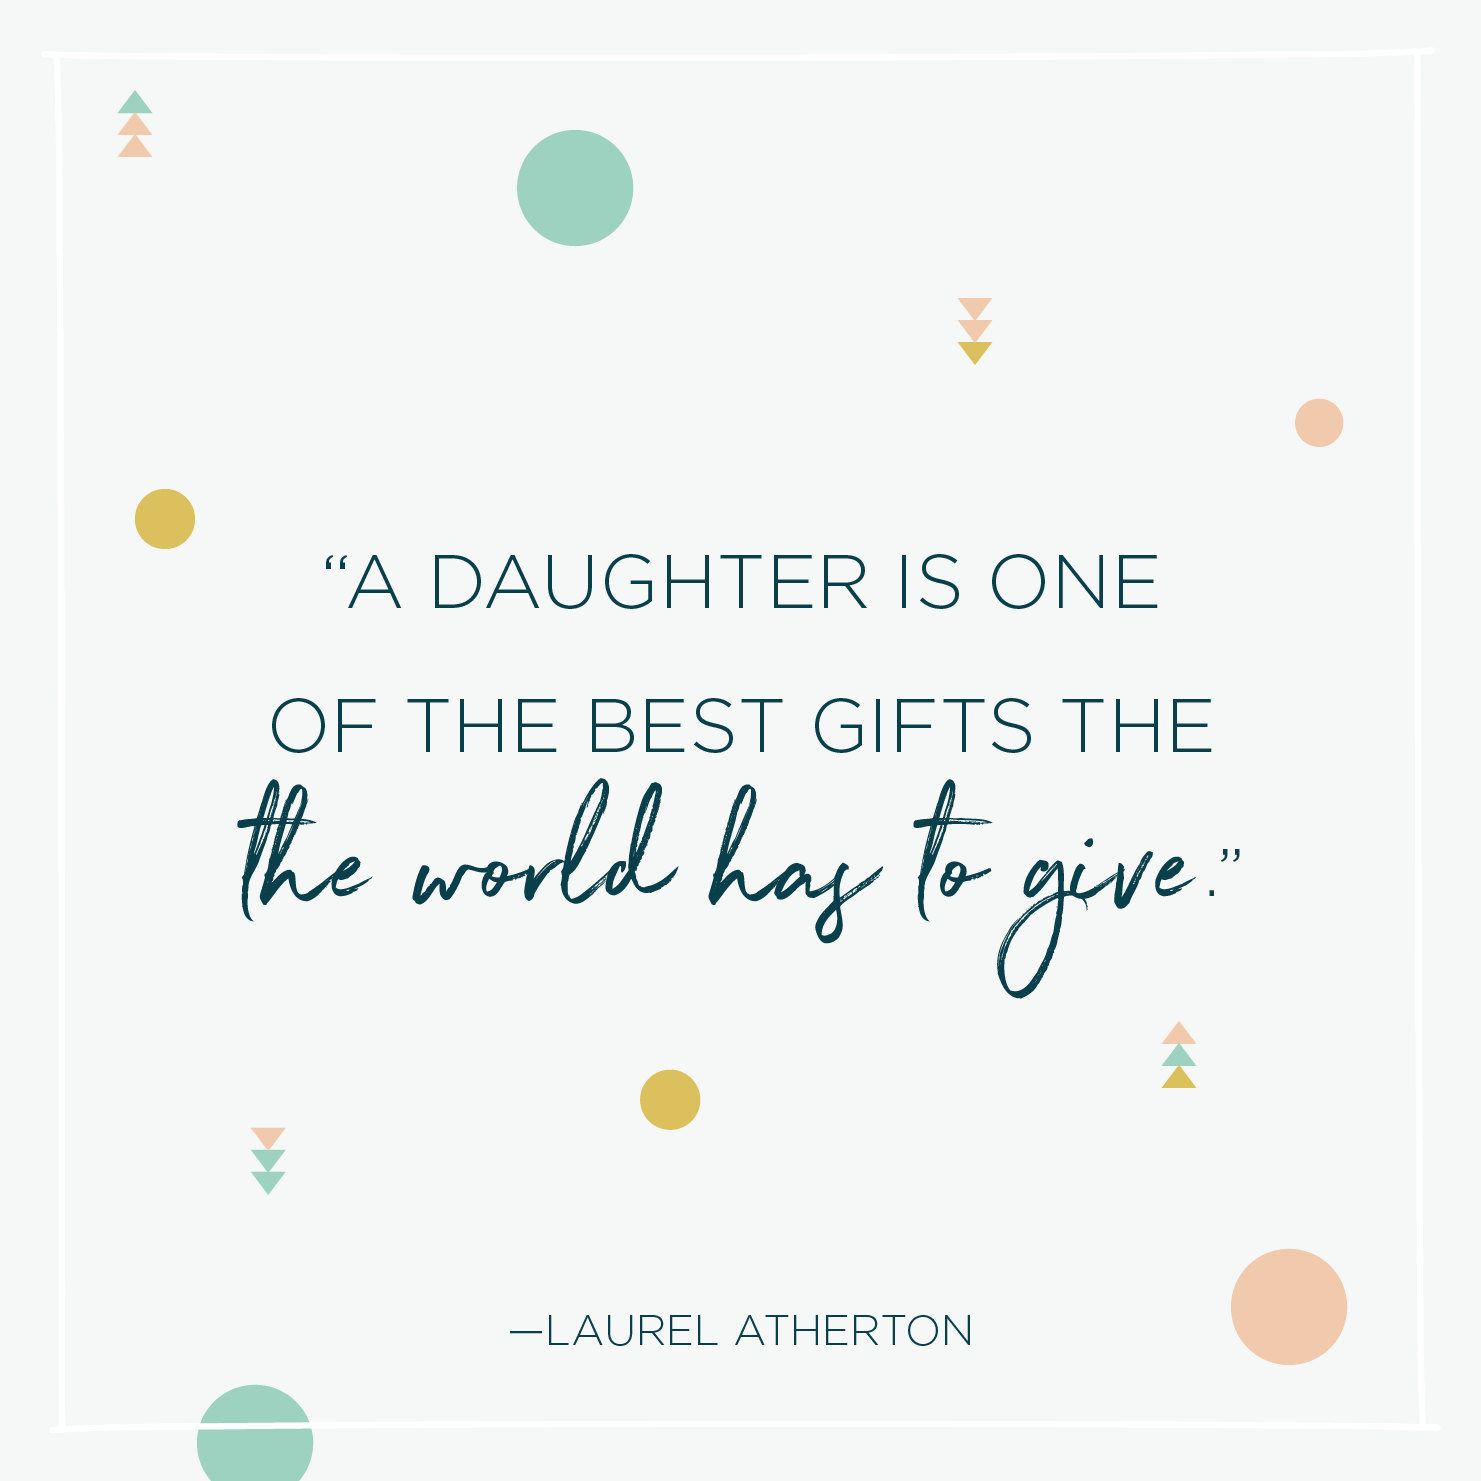 84 Inspirational Baby Quotes and Sayings | Shutterfly